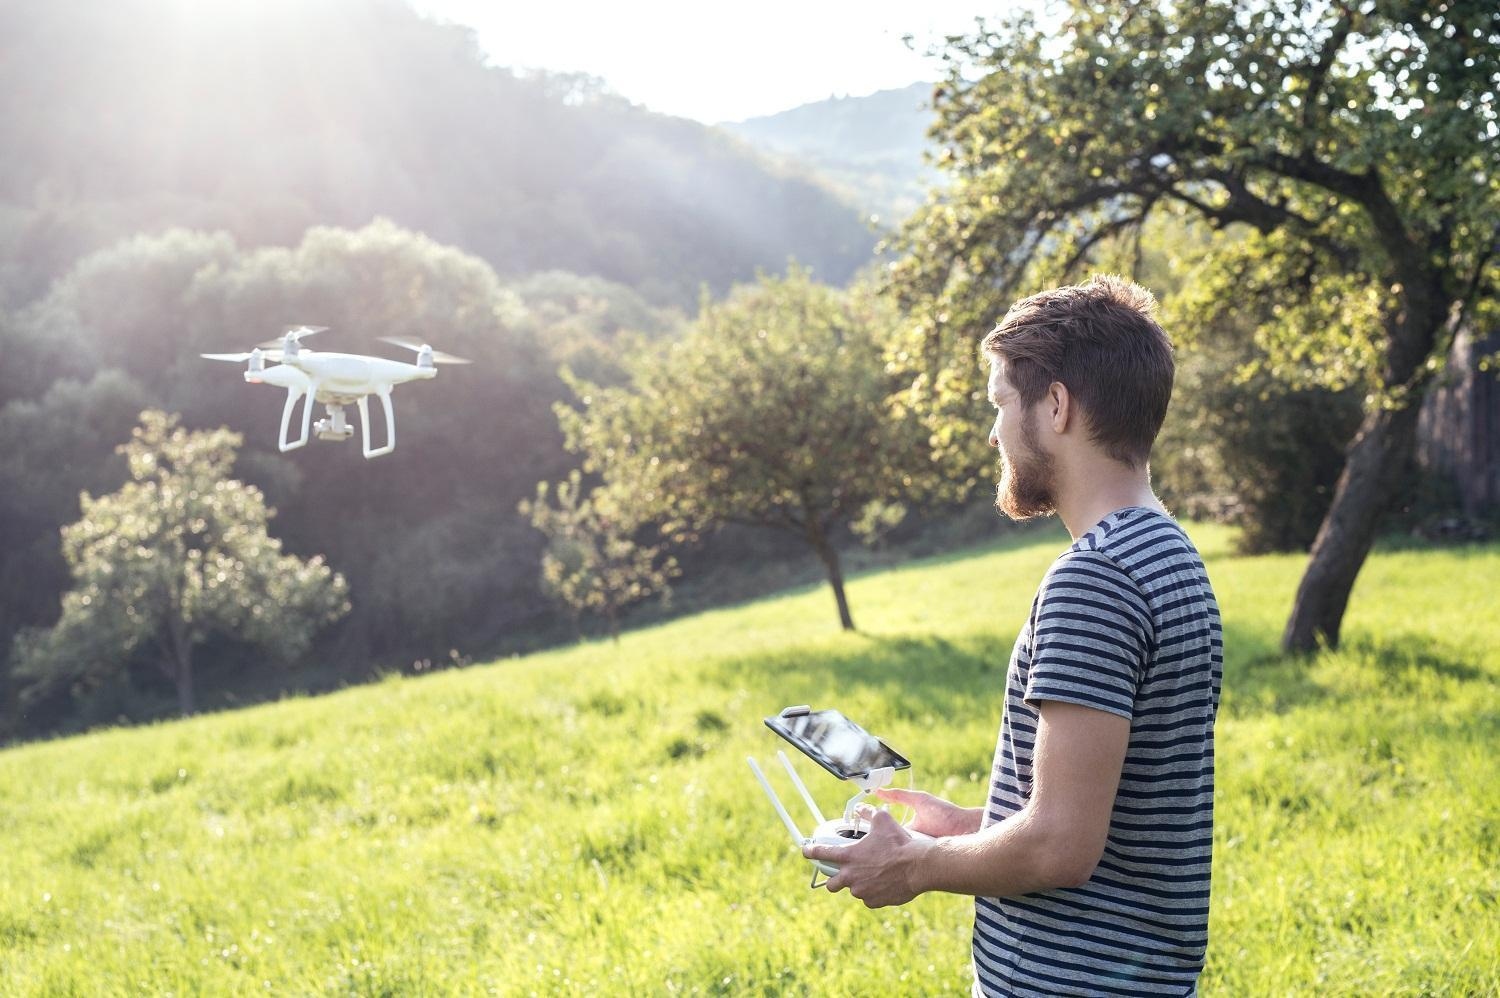 man-with-remote-control-and-flying-drone-with-camera.jpg